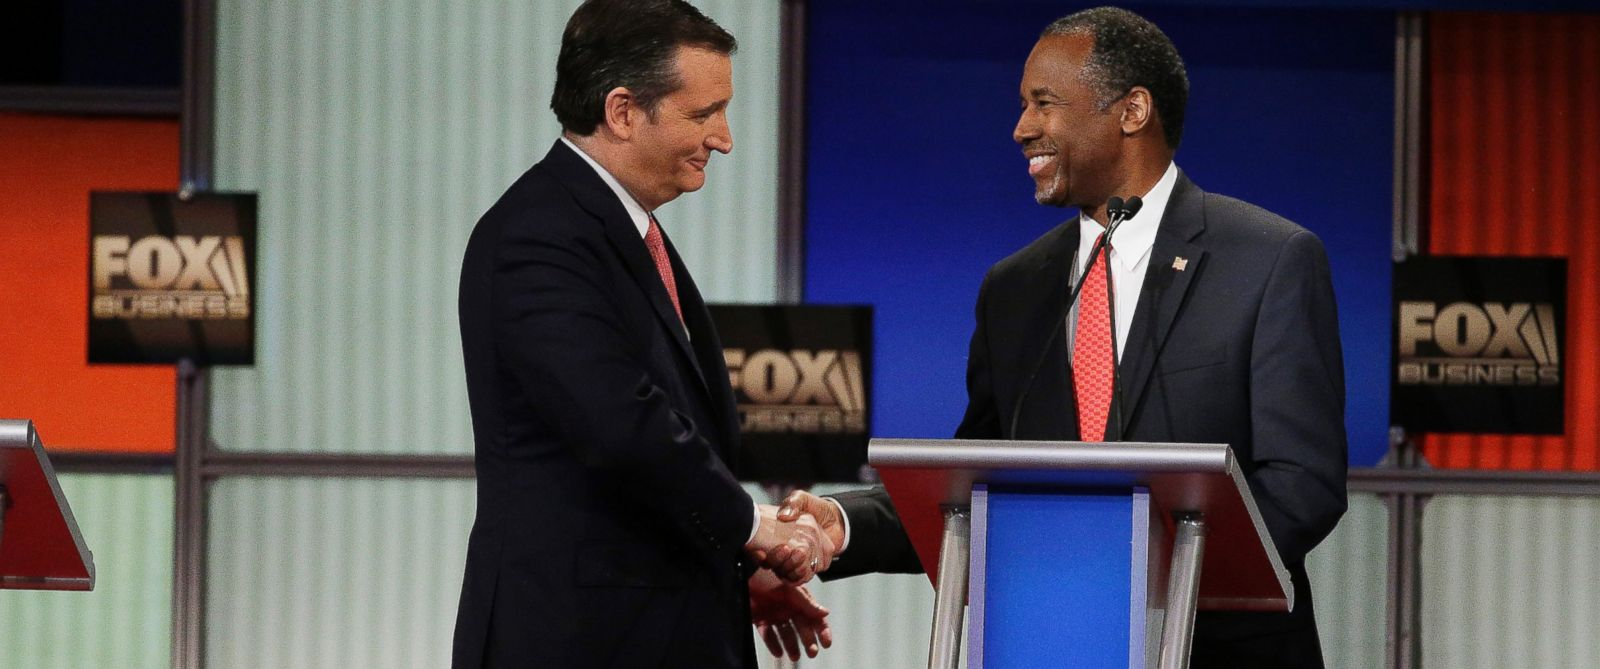 PHOTO: Sen. Ted Cruz speaks with Ben Carson after the Fox Business Network Republican presidential debate at the North Charleston Coliseum, Jan. 14, 2016, in North Charleston, S.C.